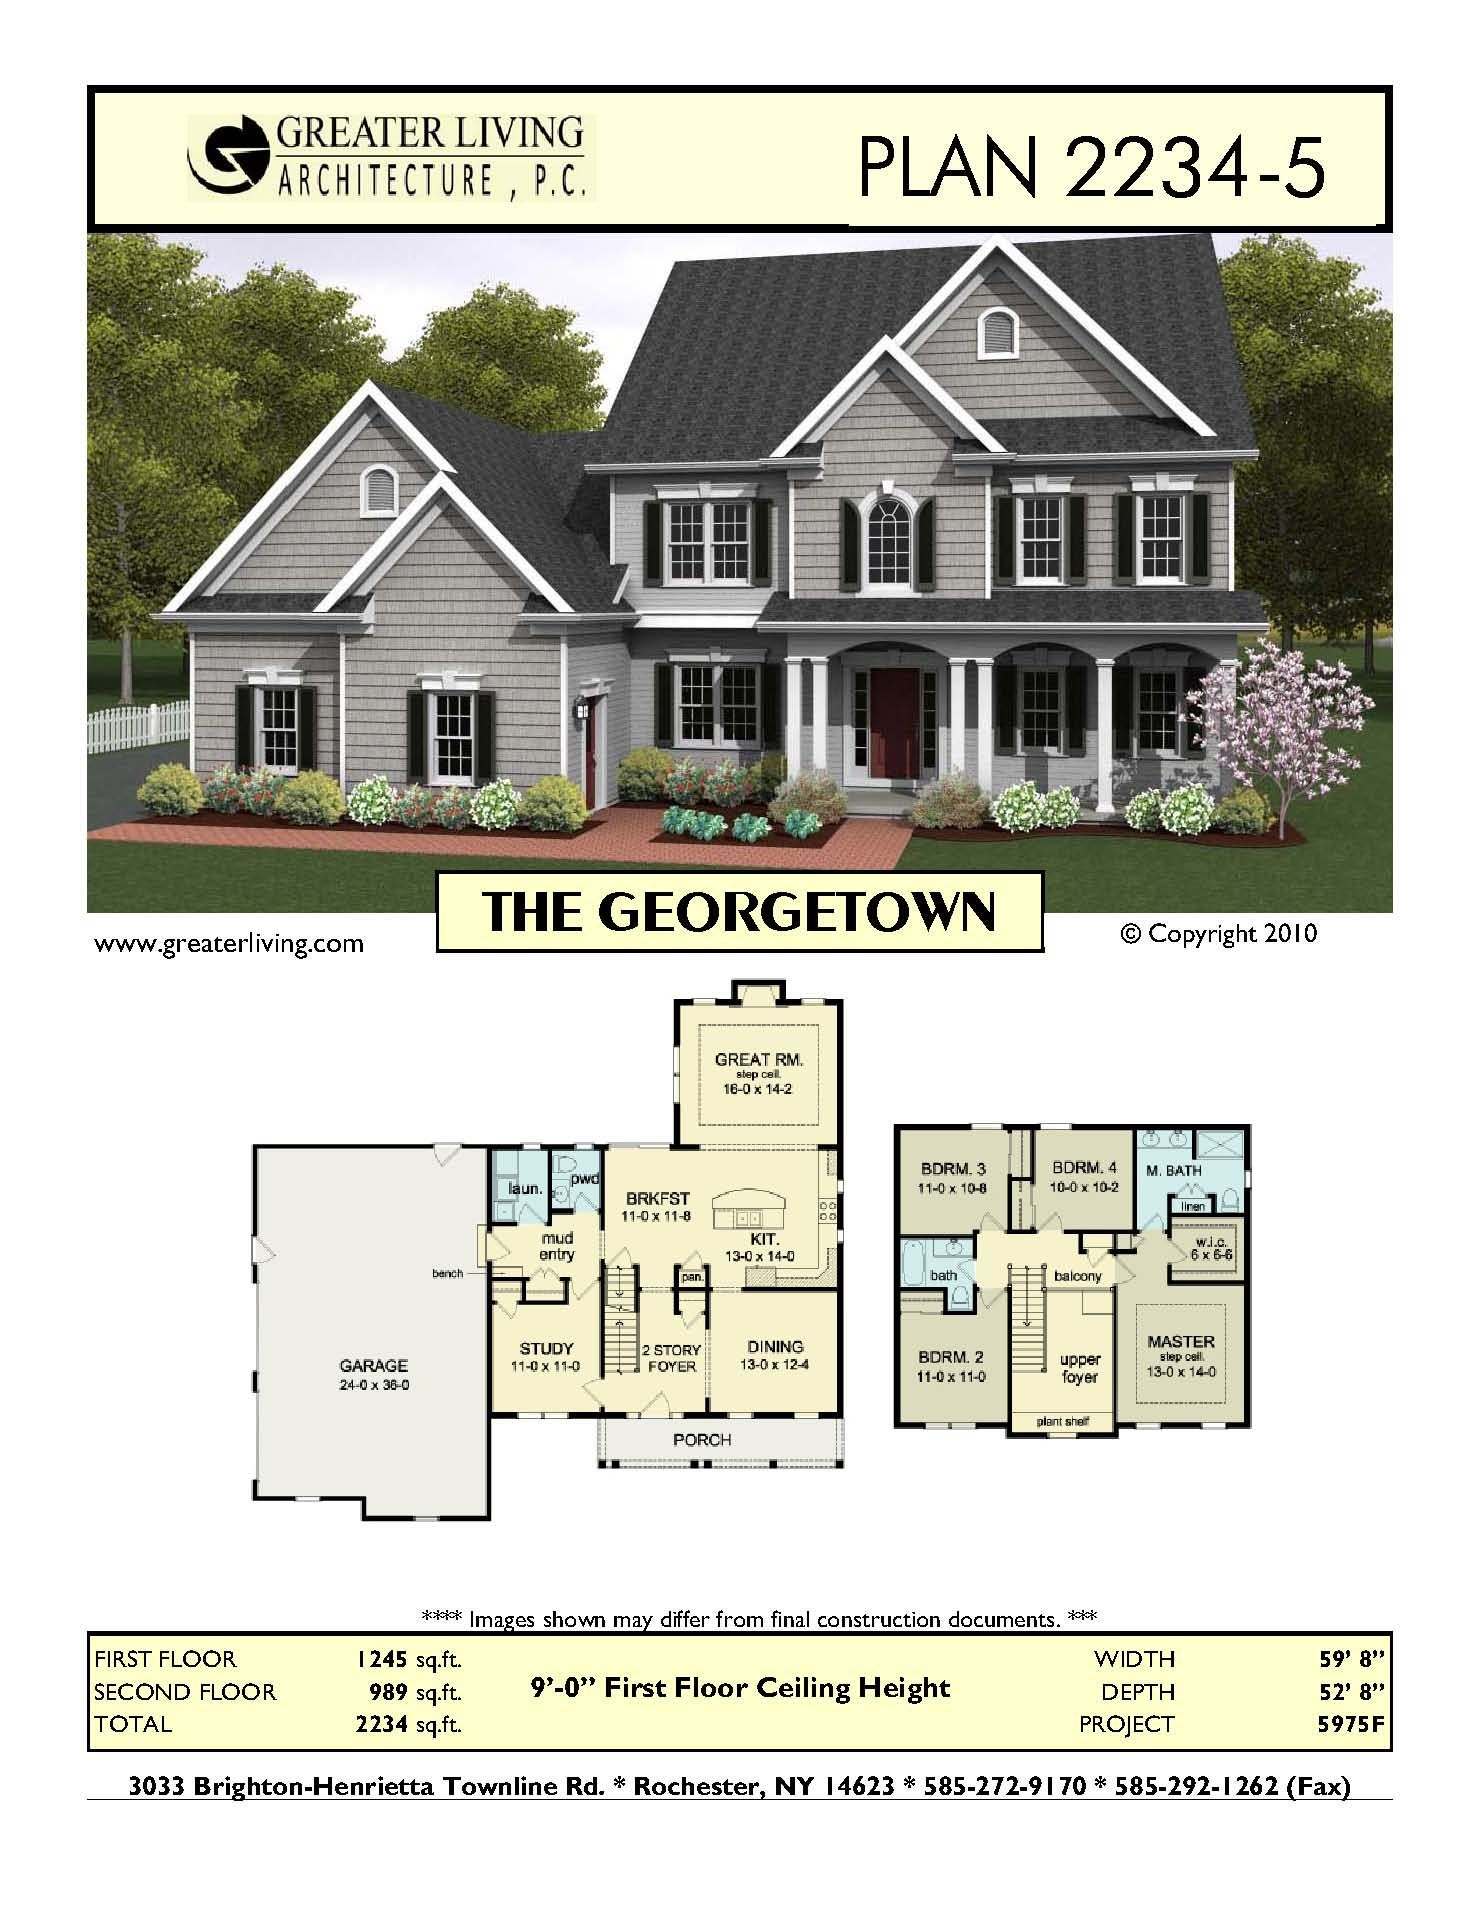 Plan 2234-5: THE GEORGETOWN - if the upstairs bedrooms were slightly ...